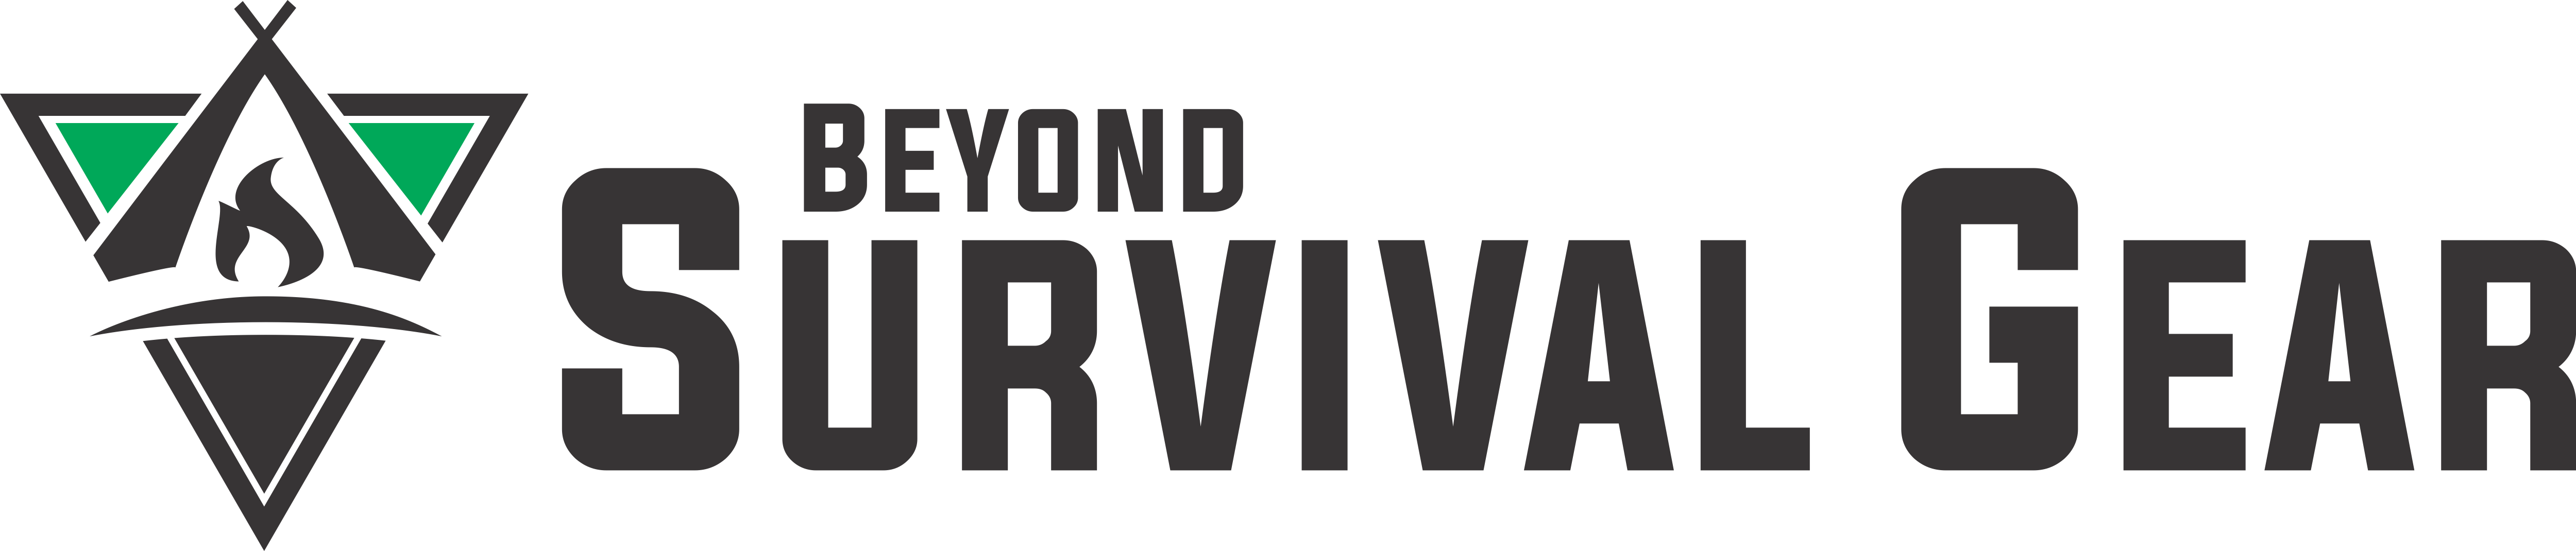 Emergency survival gear website needs an awesome and powerful logo